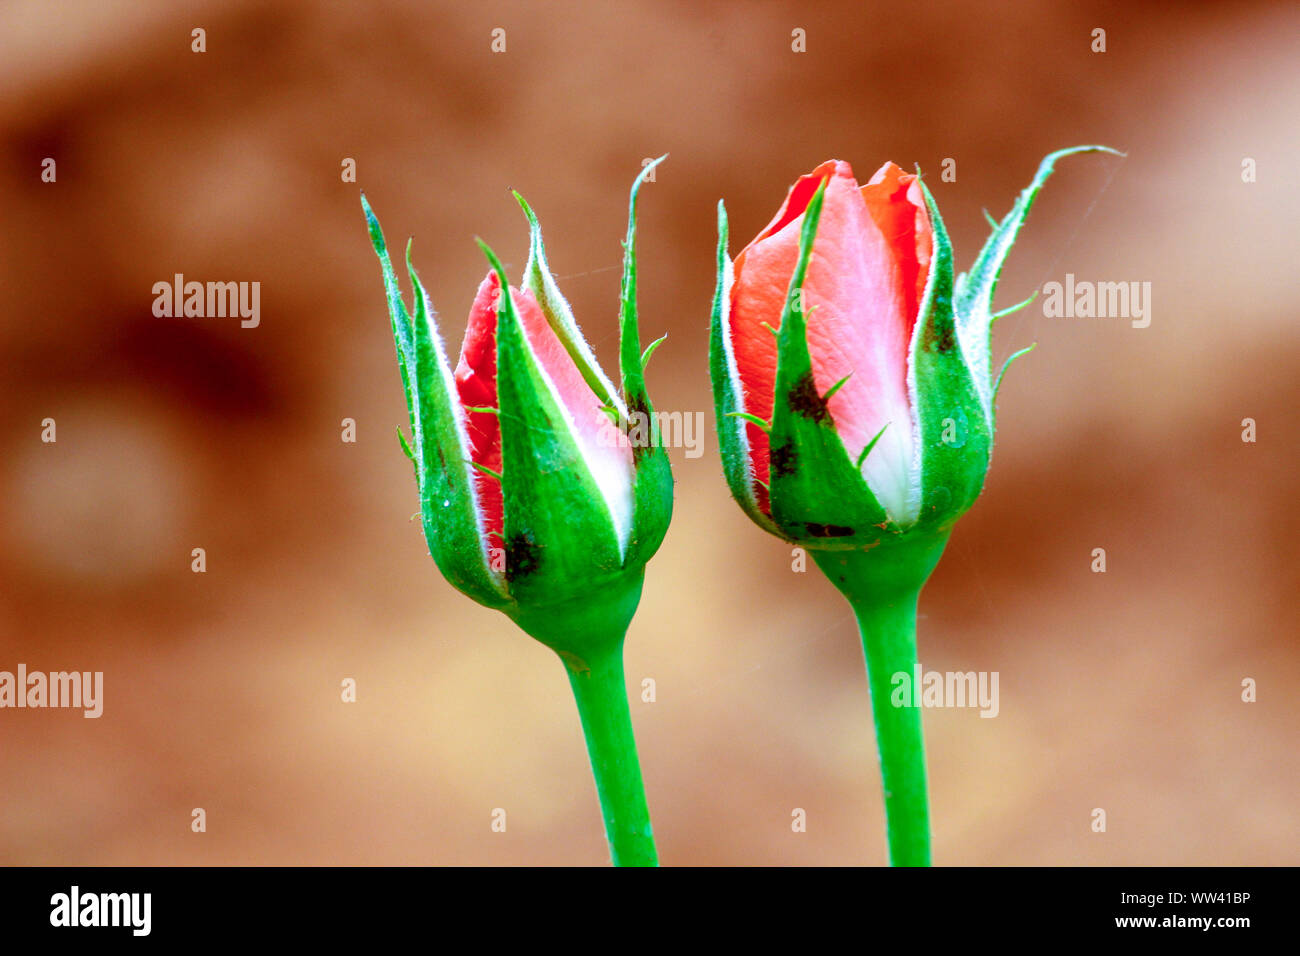 PINK ROSE BUDS Stock Photo